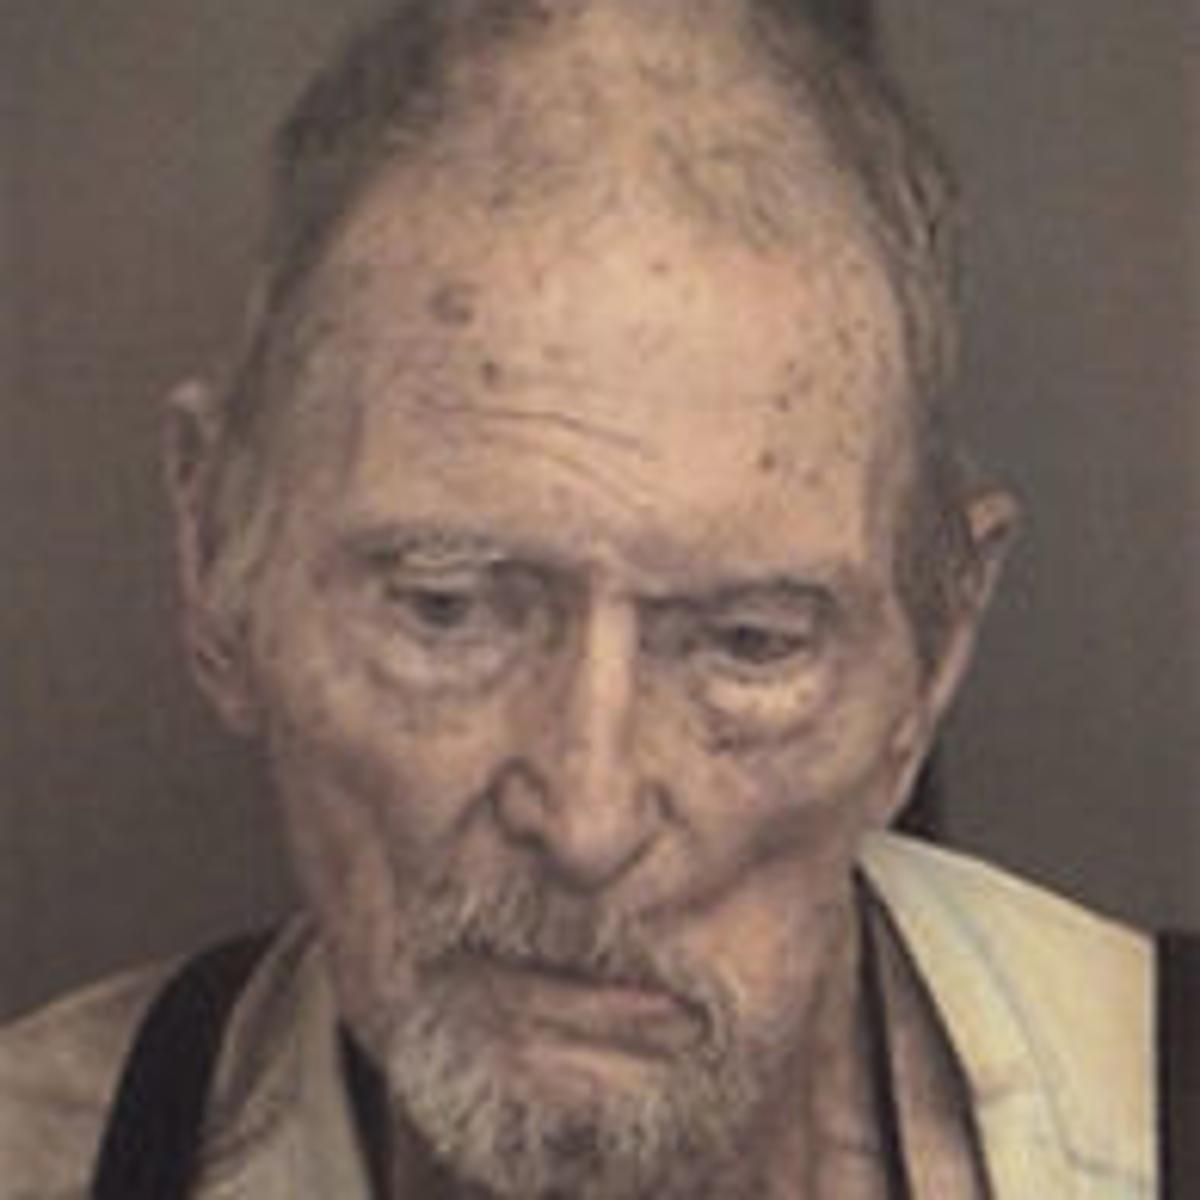 86 Year Old Man Faces Penalty In